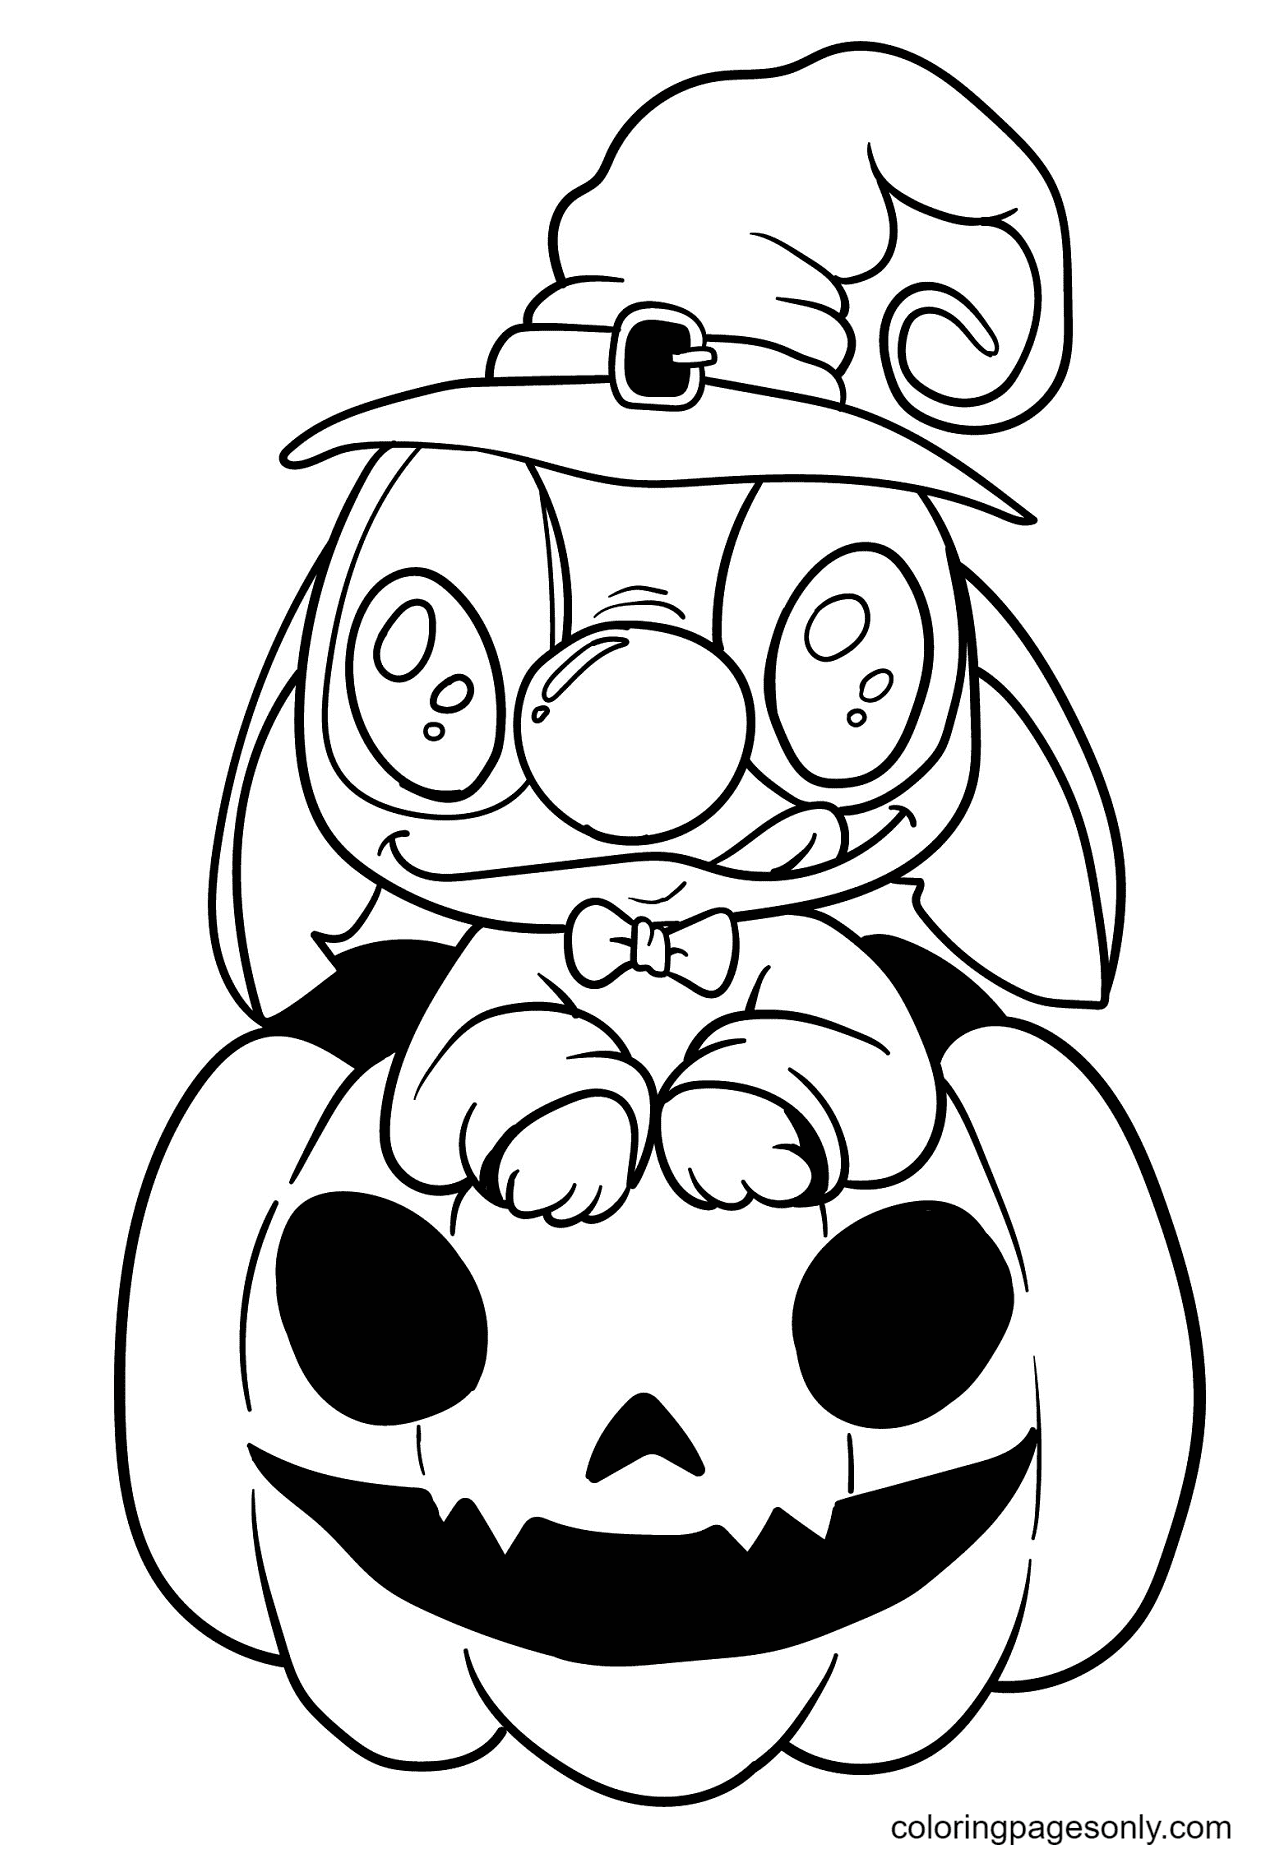 Stitch on Pumpkin Coloring Page